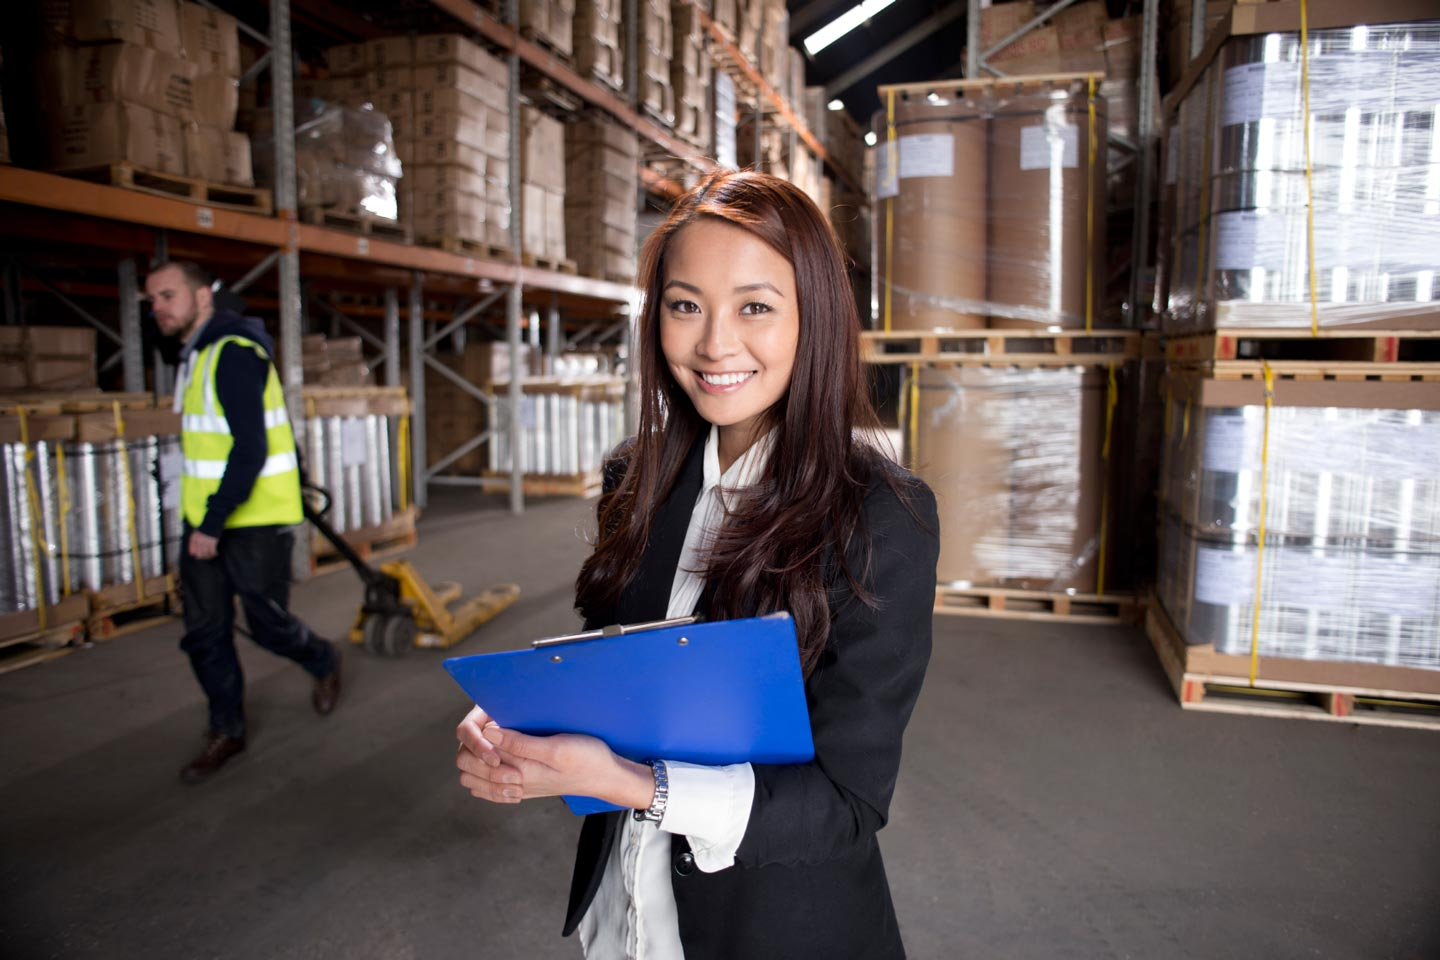 A manager takes stock of the warehouse with a blue clipboard.